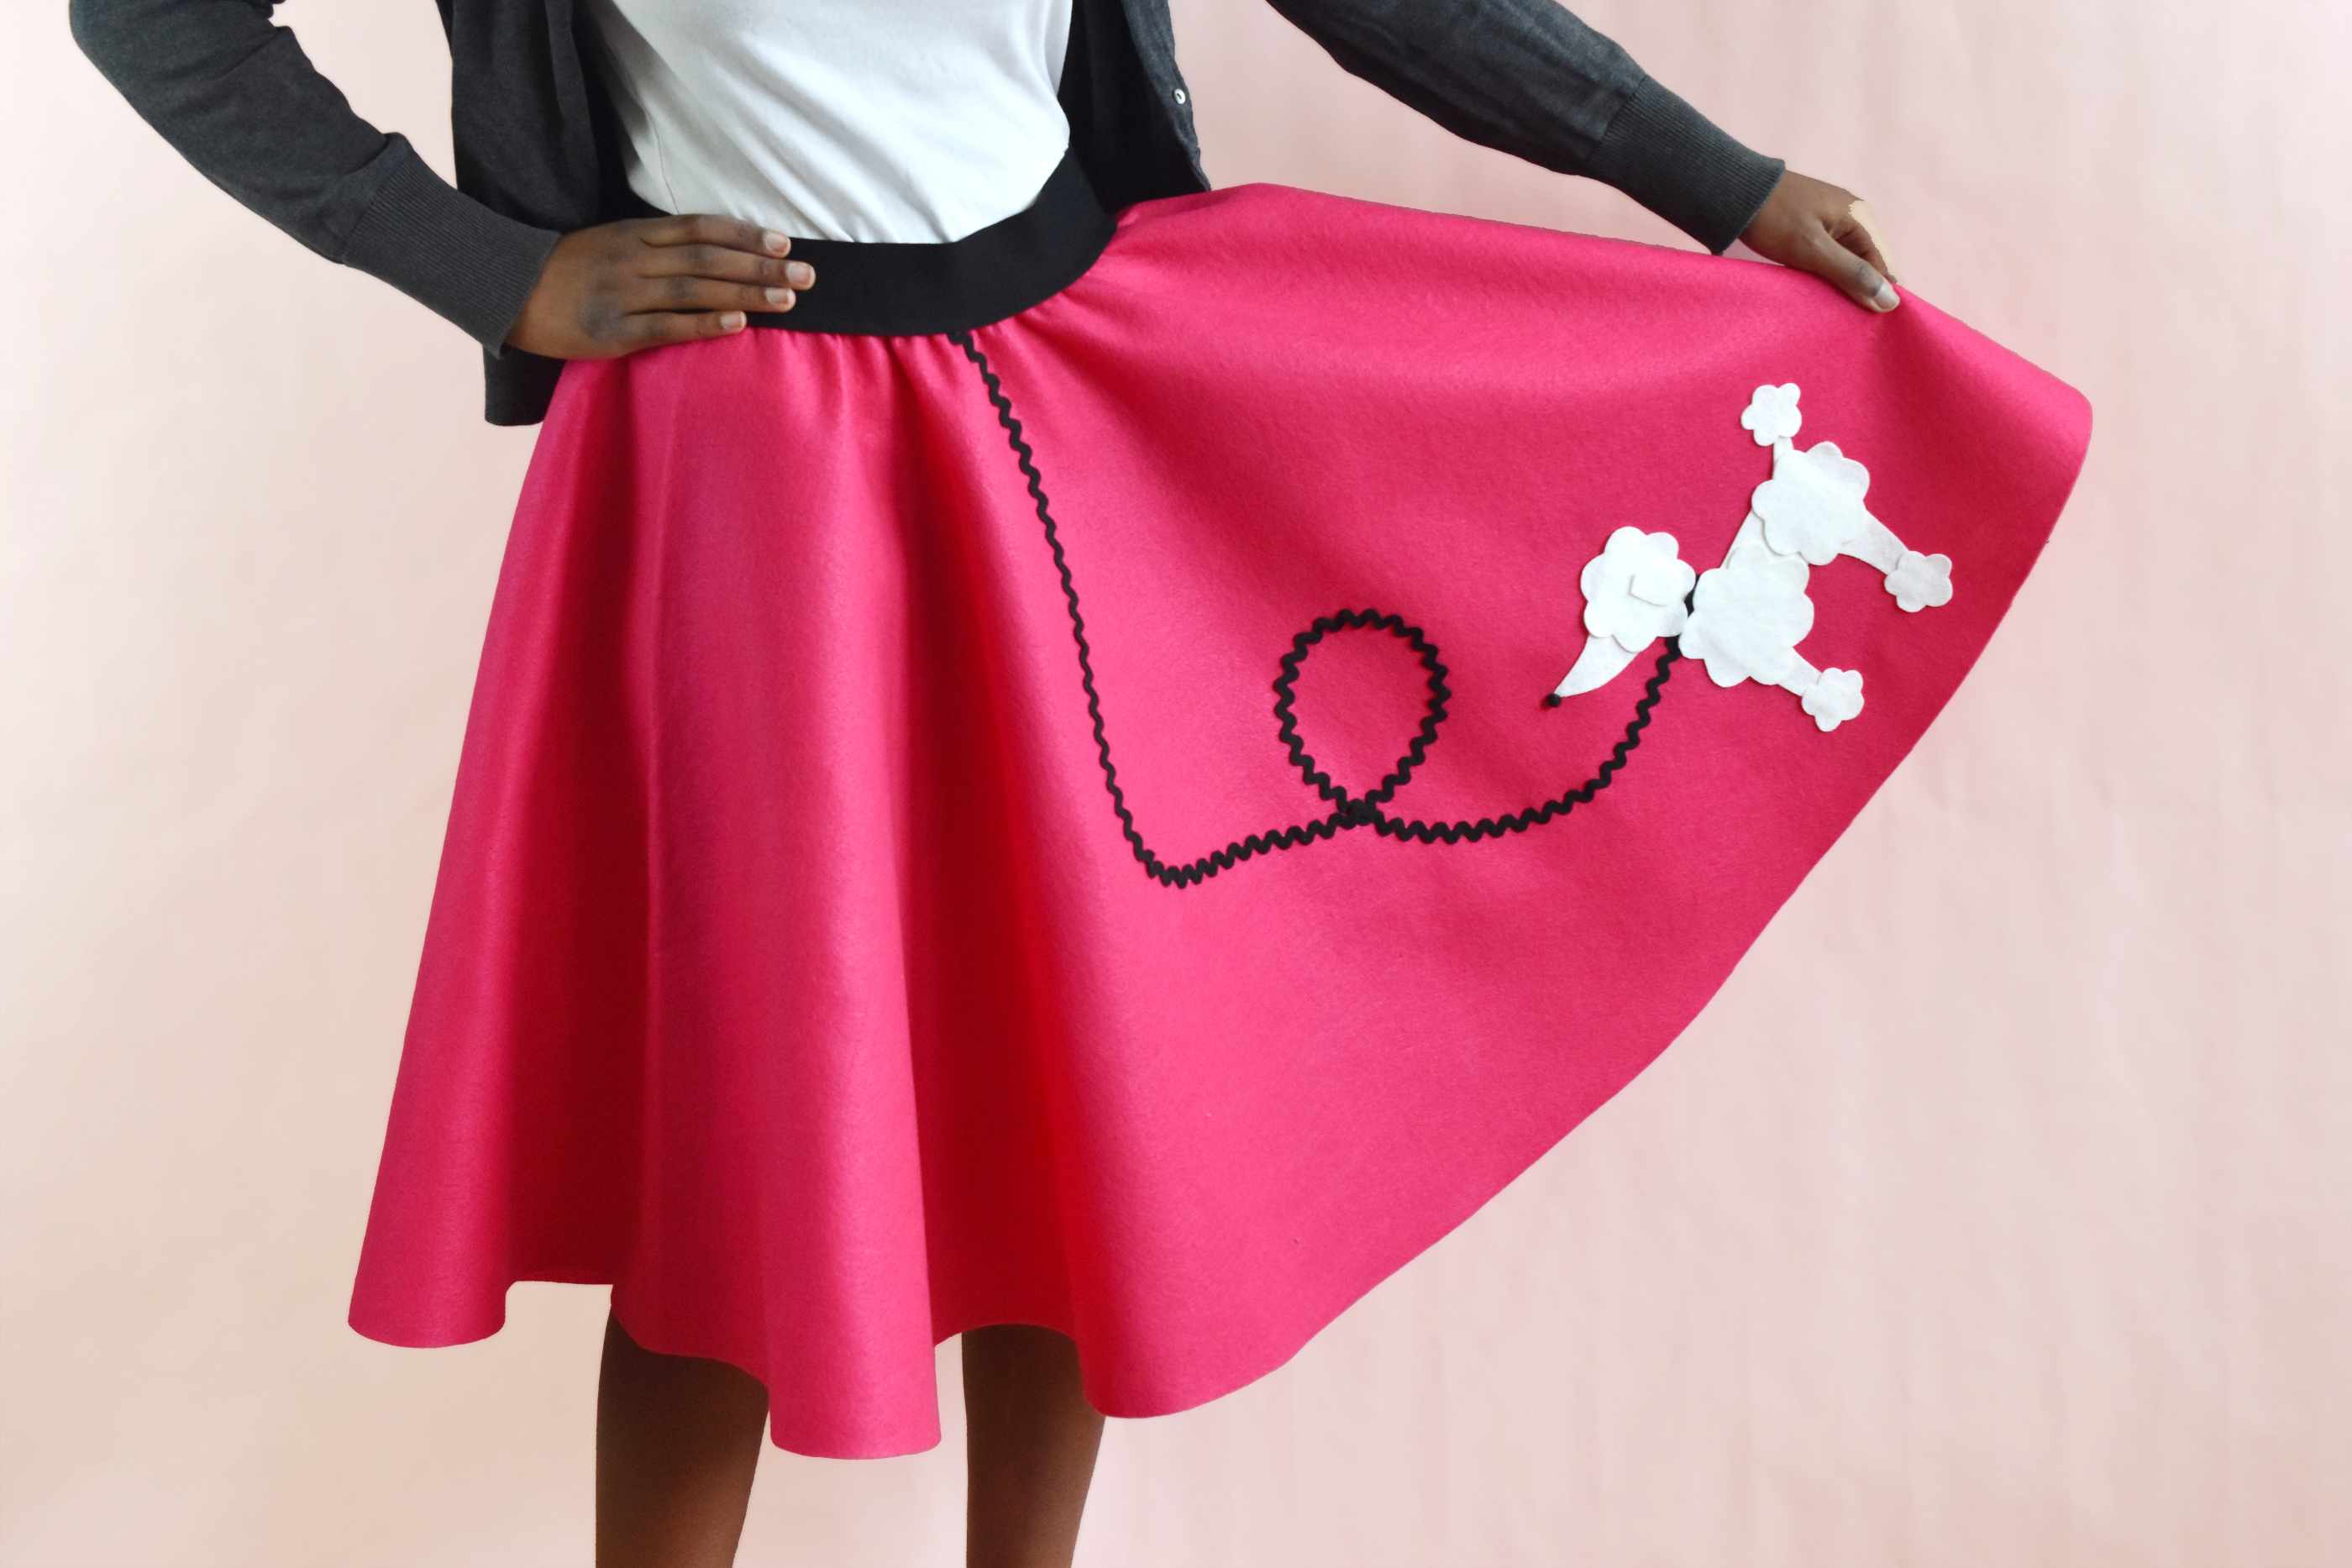 558577a852be How to Make an Easy-Sew Poodle Skirt